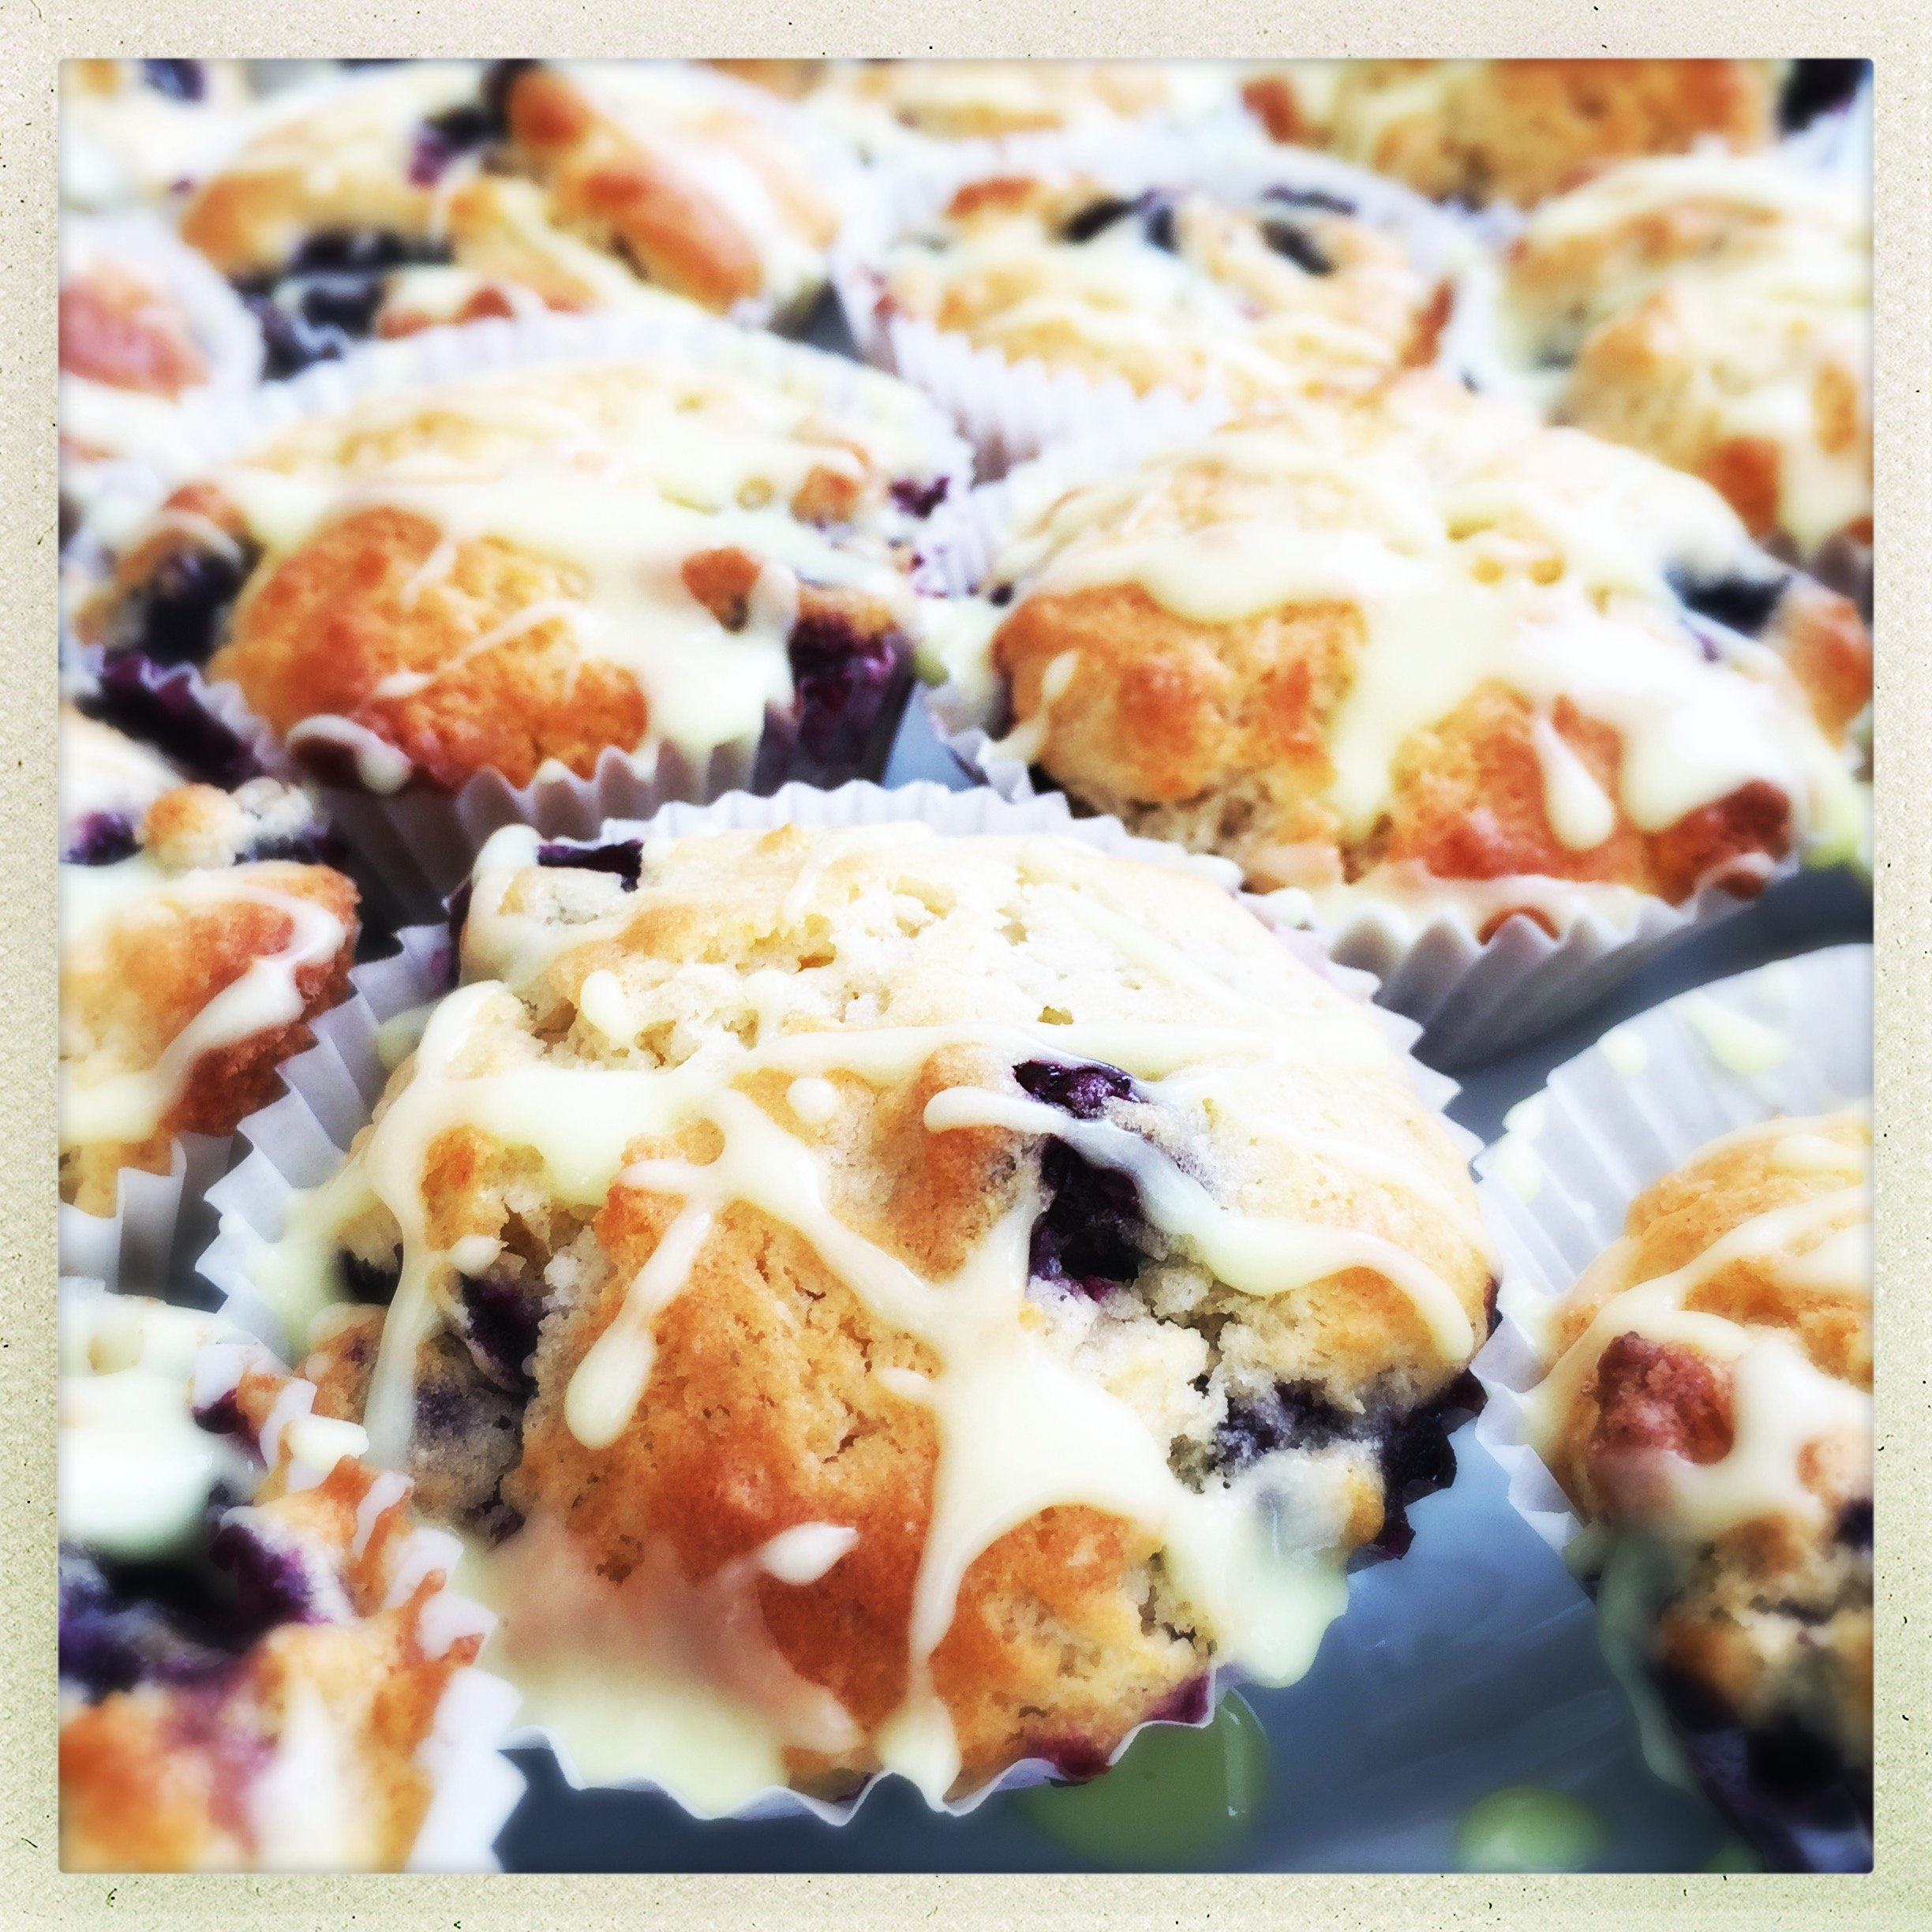 Mini blueberry muffins with lemon icing